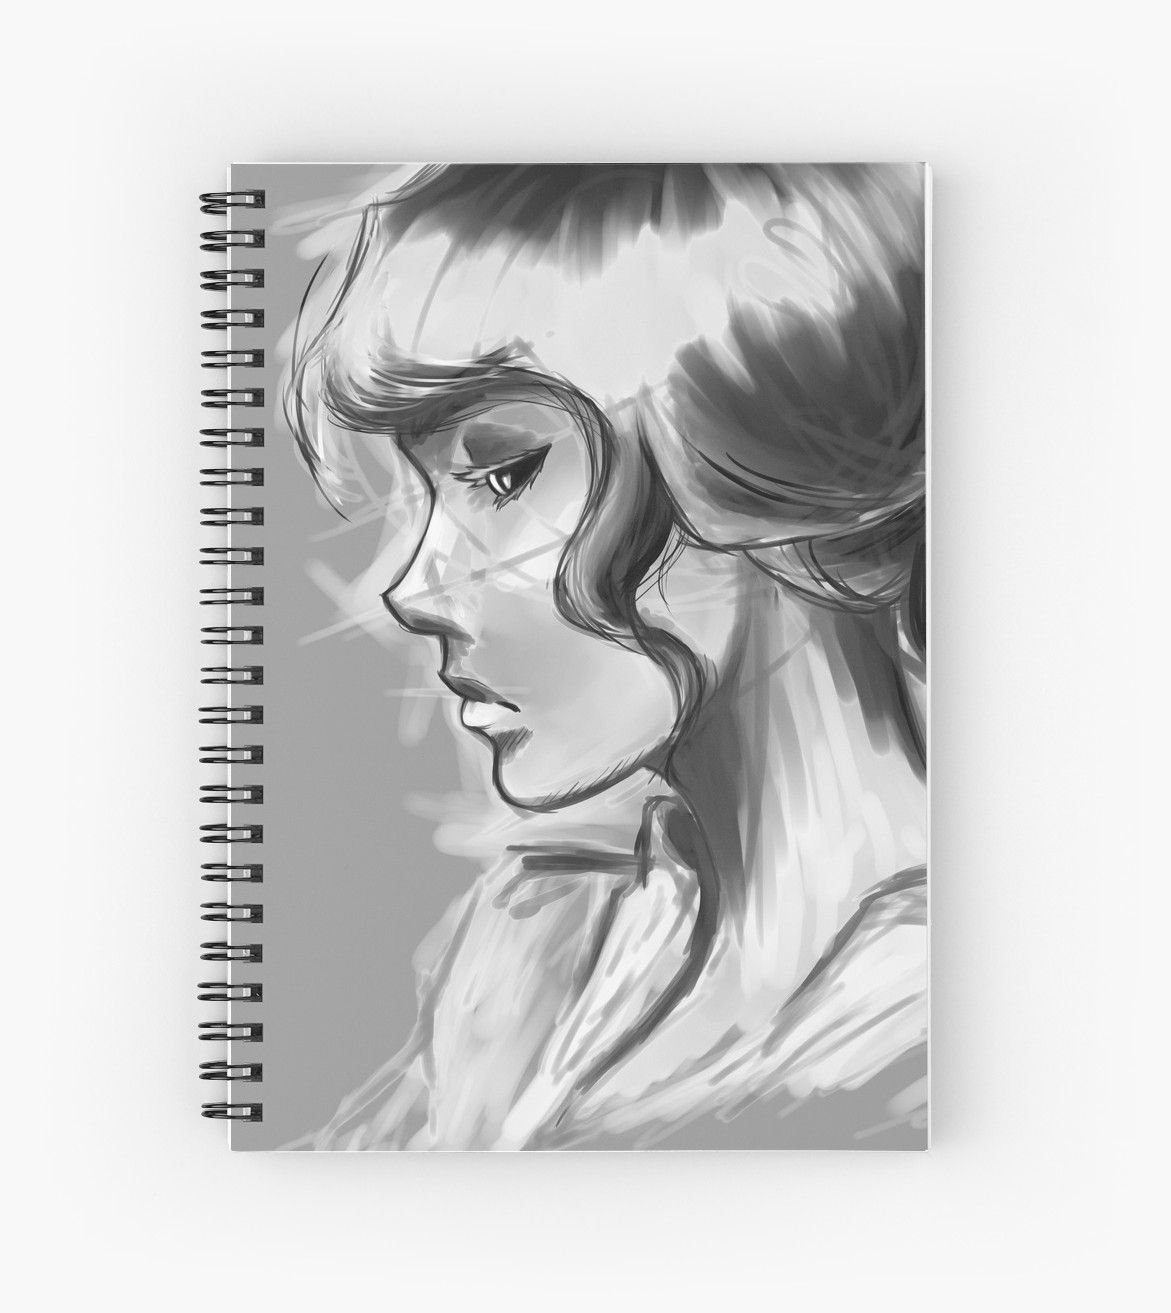 girl profile anime portrait black and white sketchy spiral